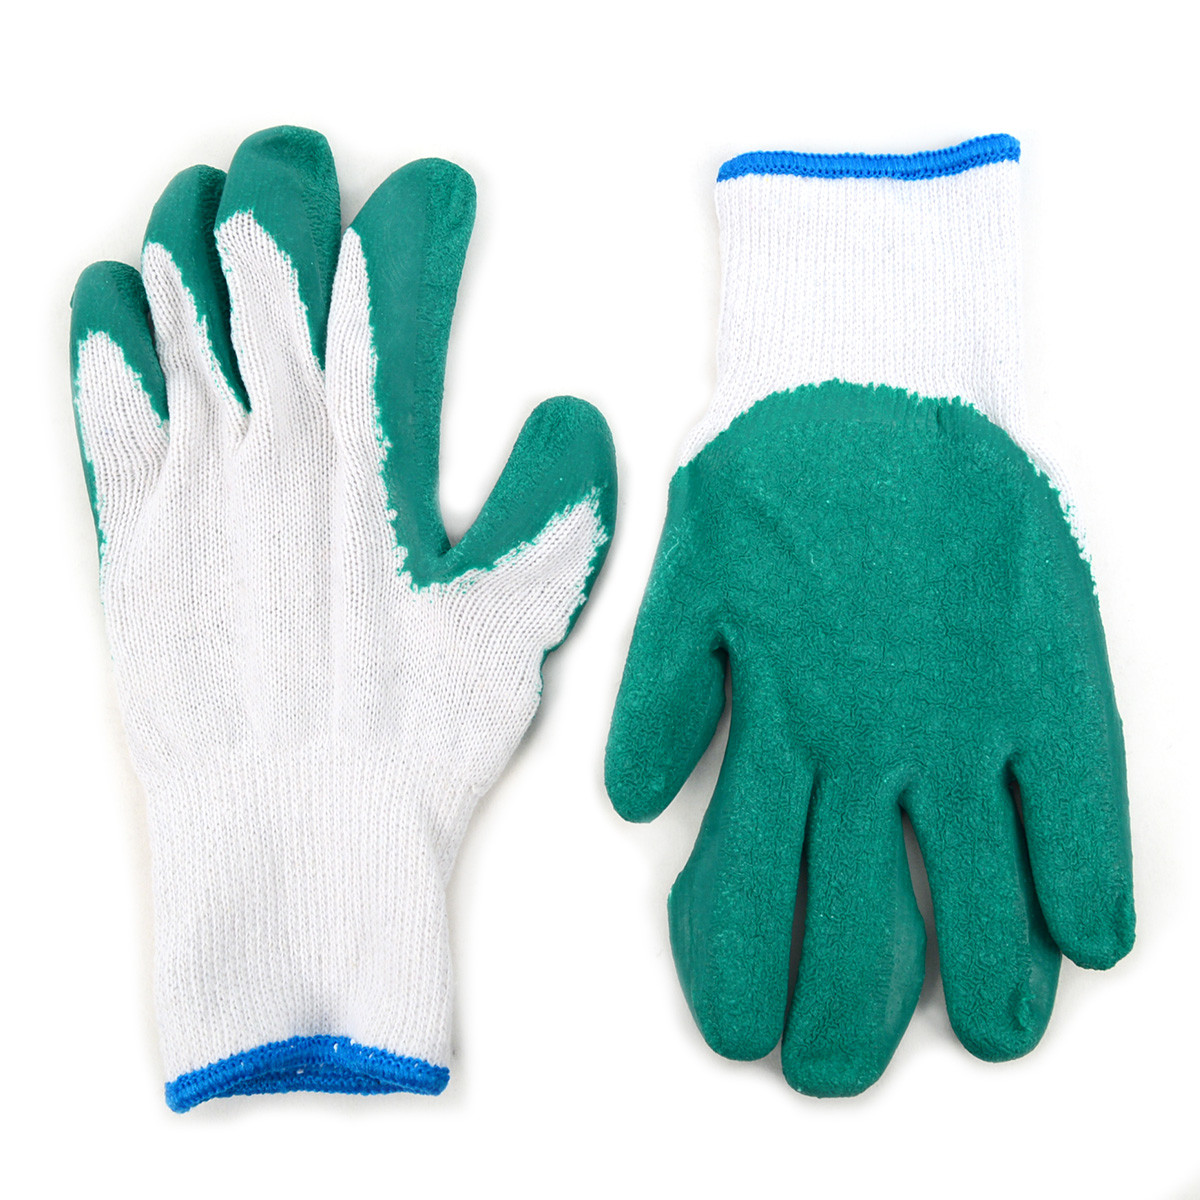 12 Pack Working Gloves with Rubber Palm Coated - Green - WGL1714